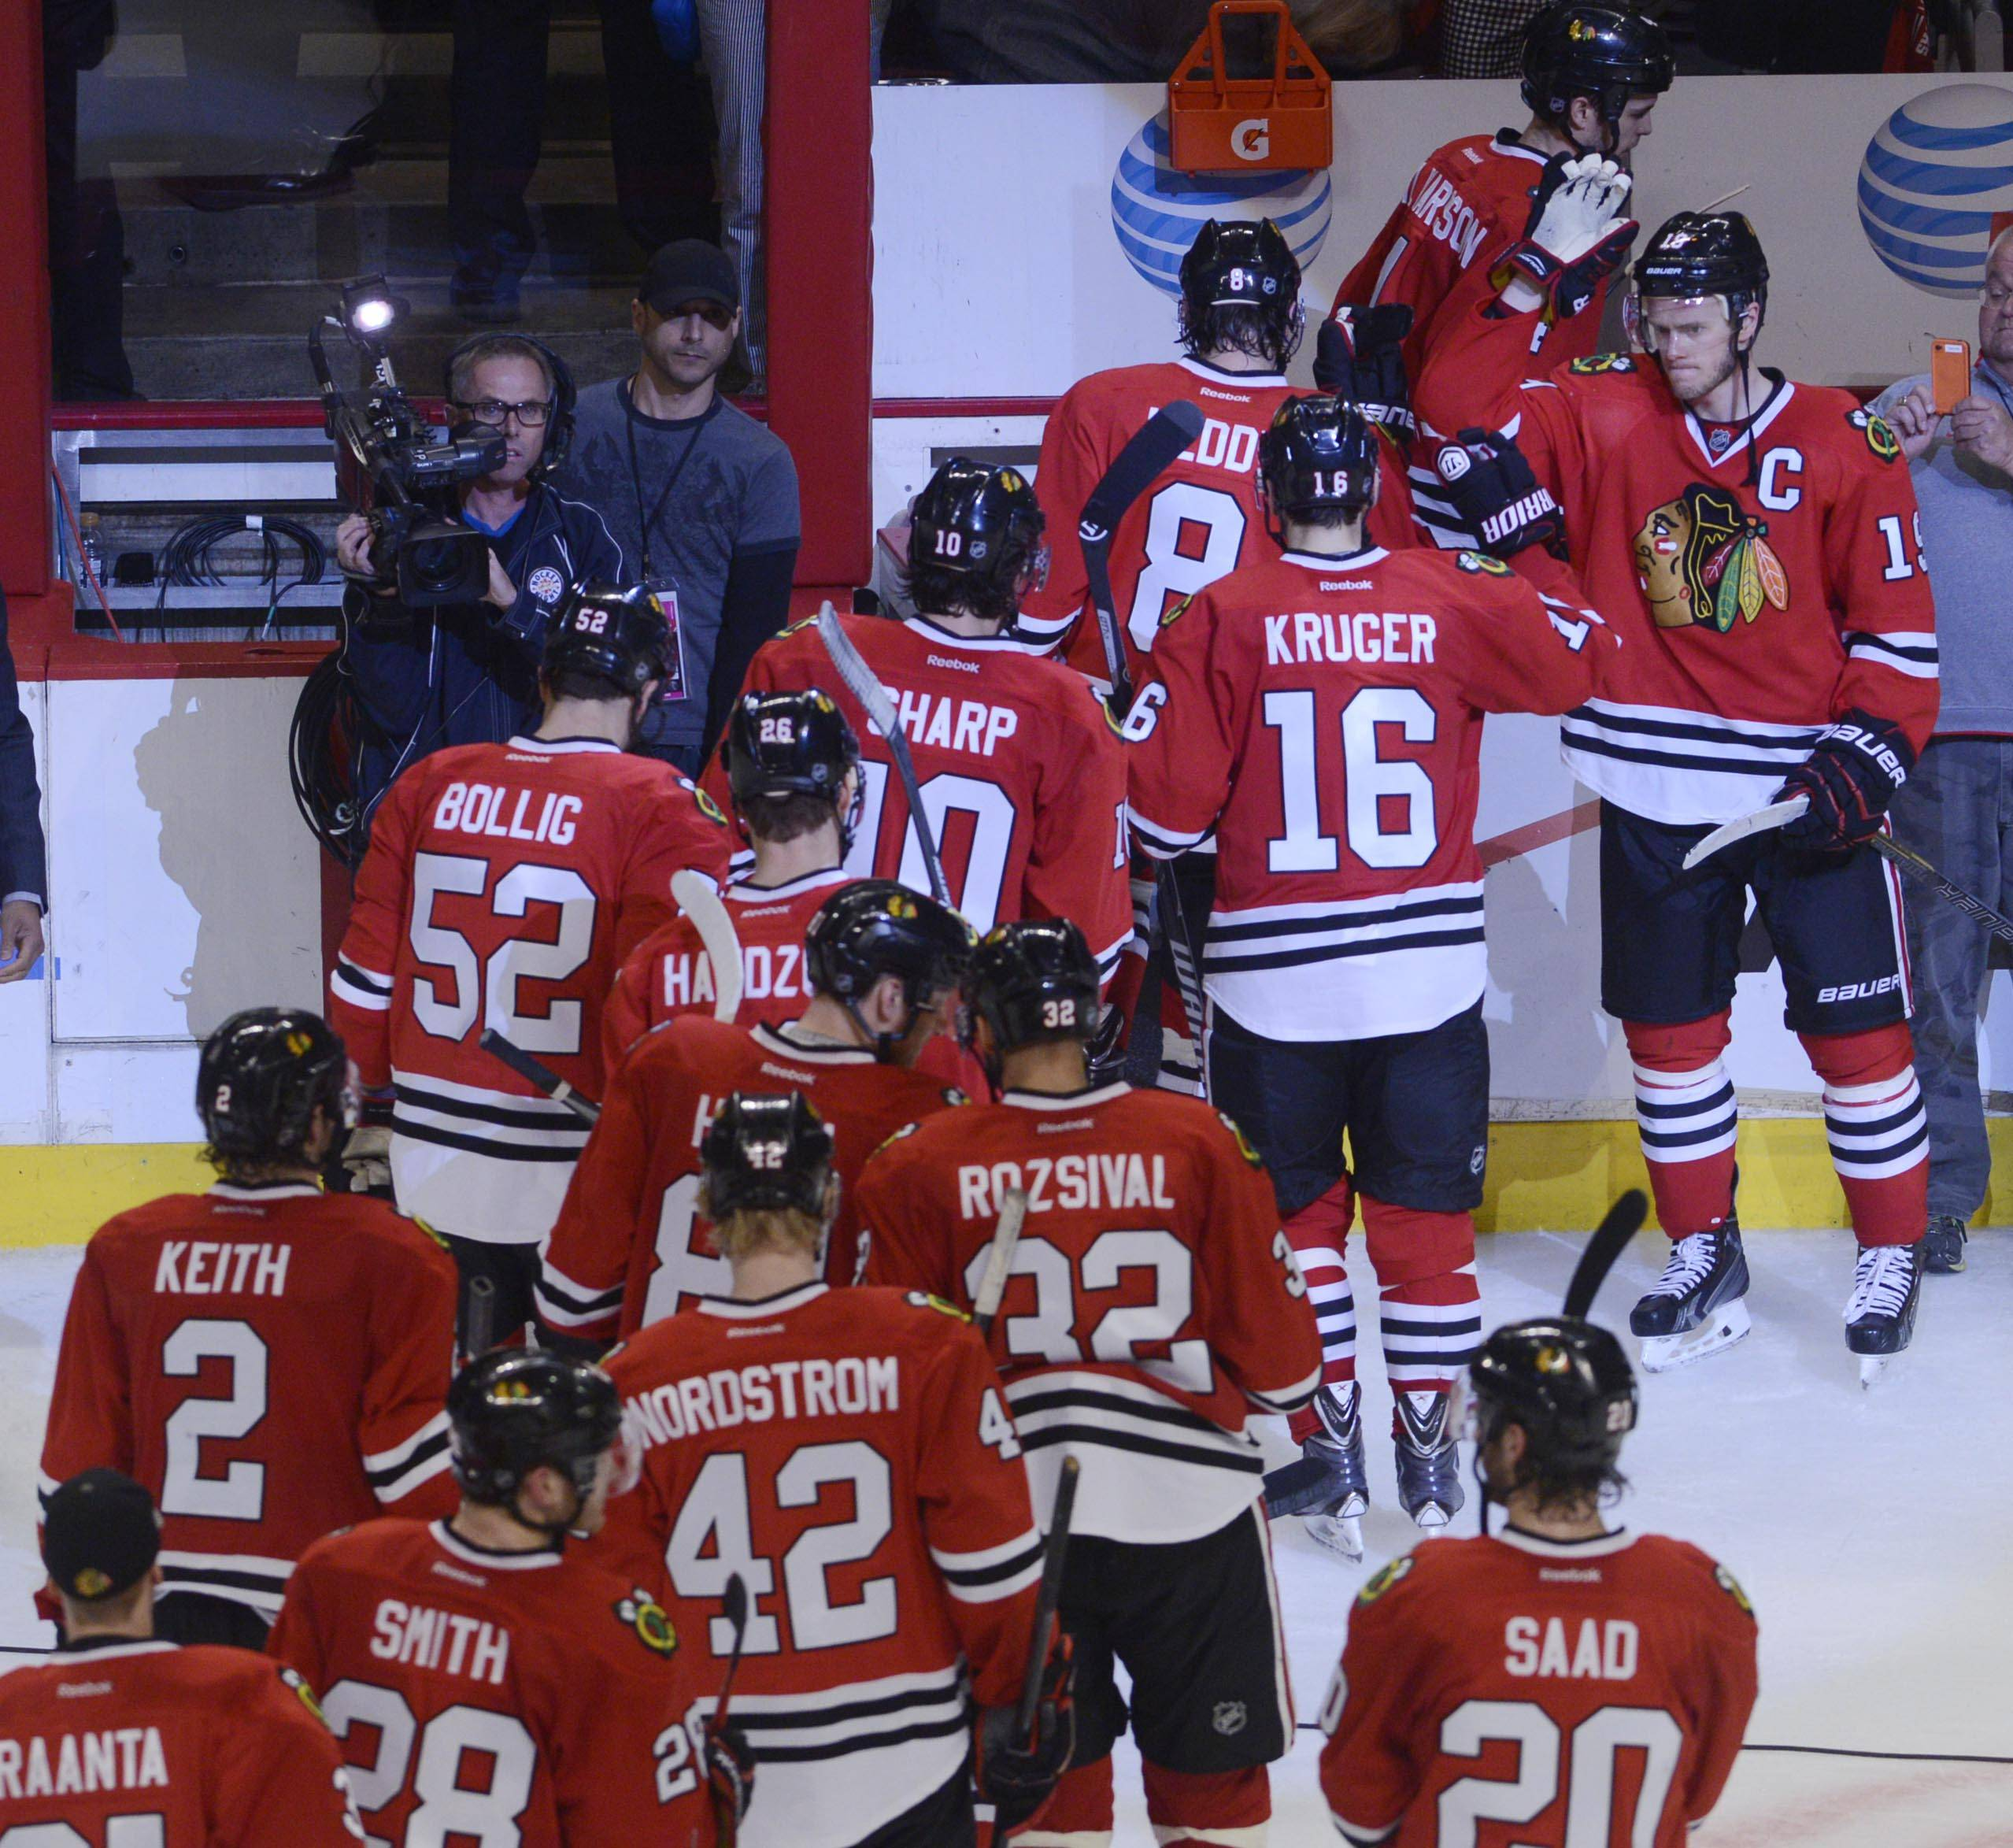 Chicago Blackhawks captain Jonathan Toews congratulates his teammates Sunday after they defeated the St. Louis Blues in Game 6 of the NHL first round playoffs.